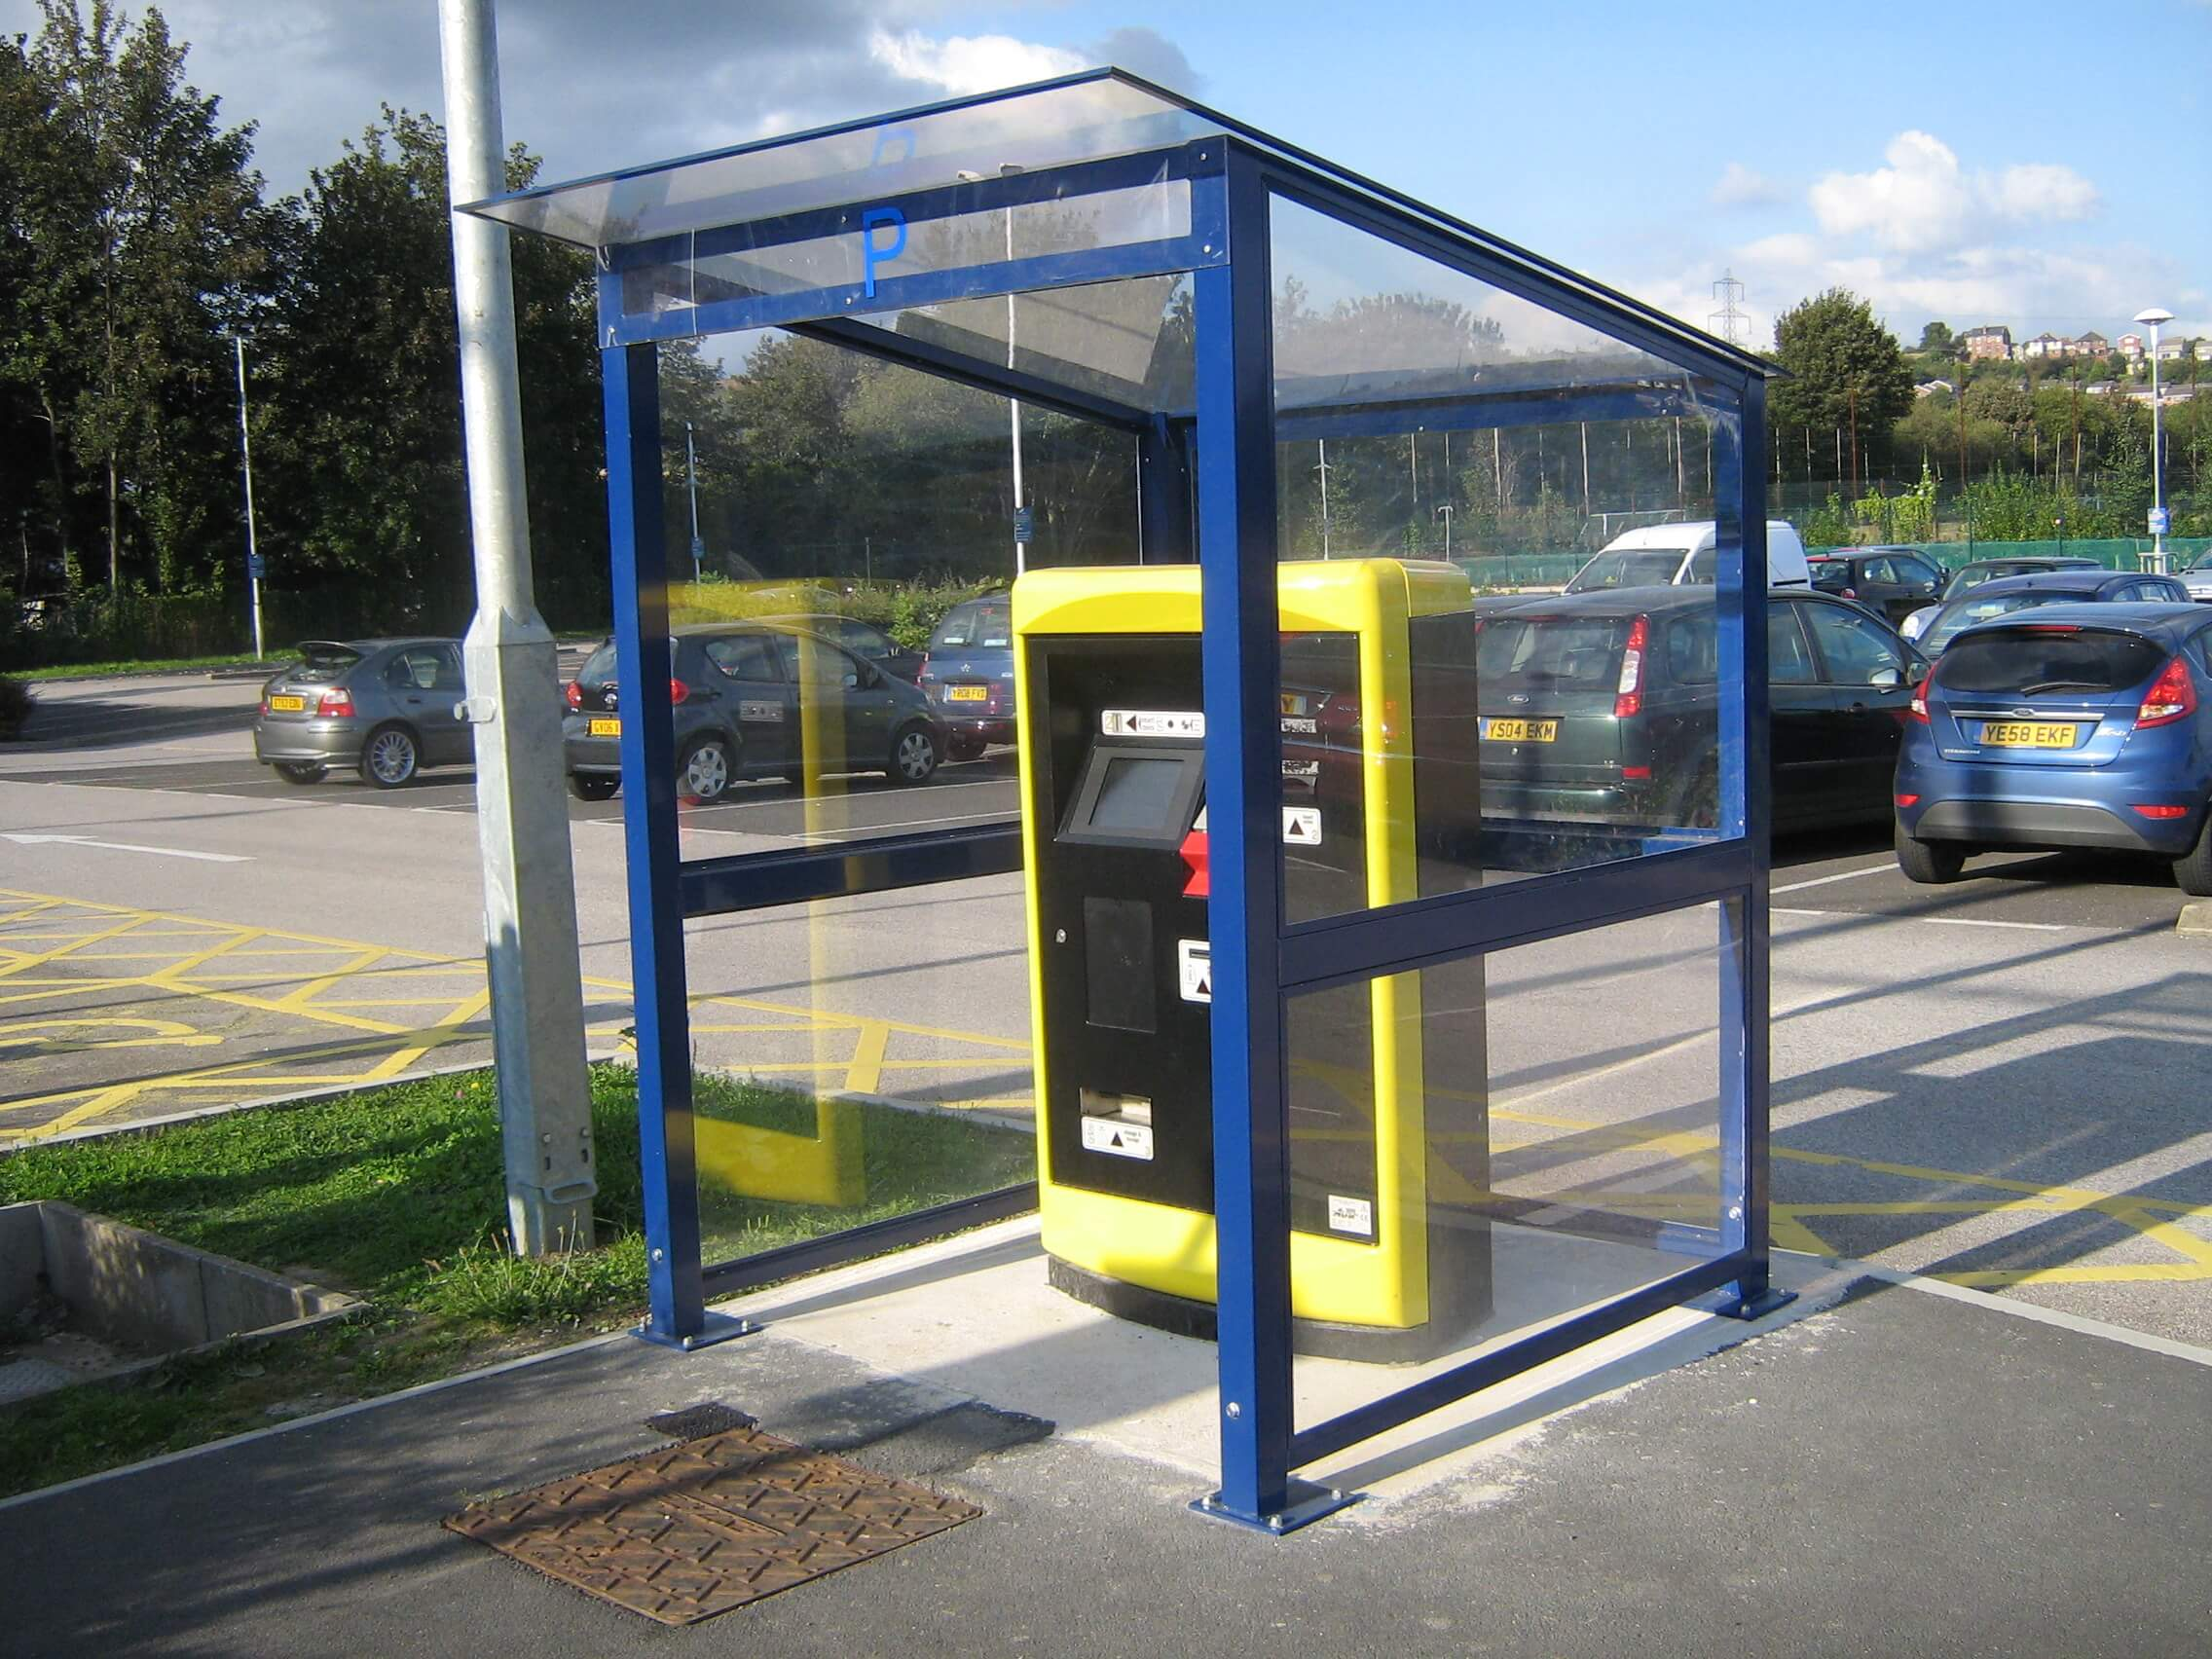 Mono Pitch Ticket Machine Shelter